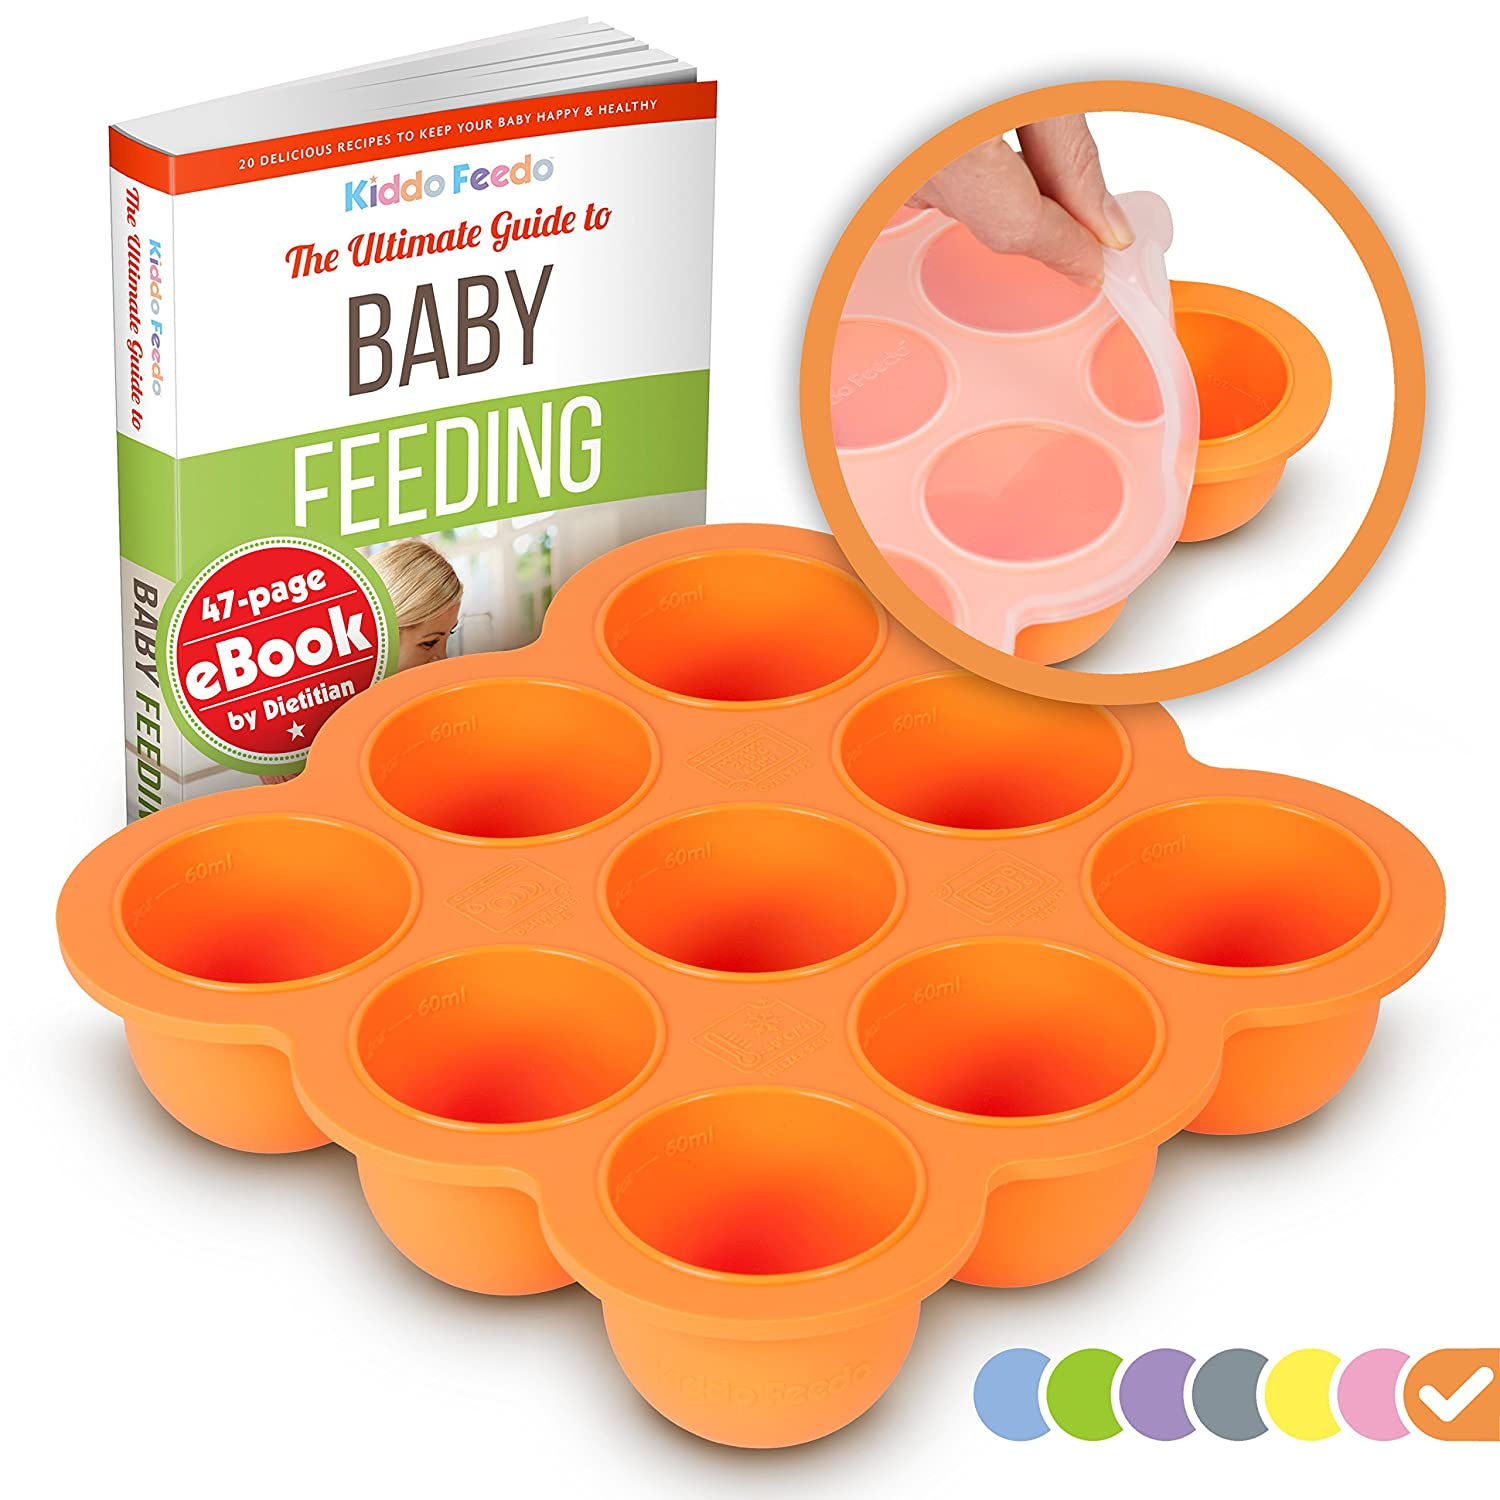 KIDDO FEEDO Baby Food Containers - Perfect Storage for Freezing Baby Food, Breast Milk and More - Free E-book by Author/Dietitian - Green